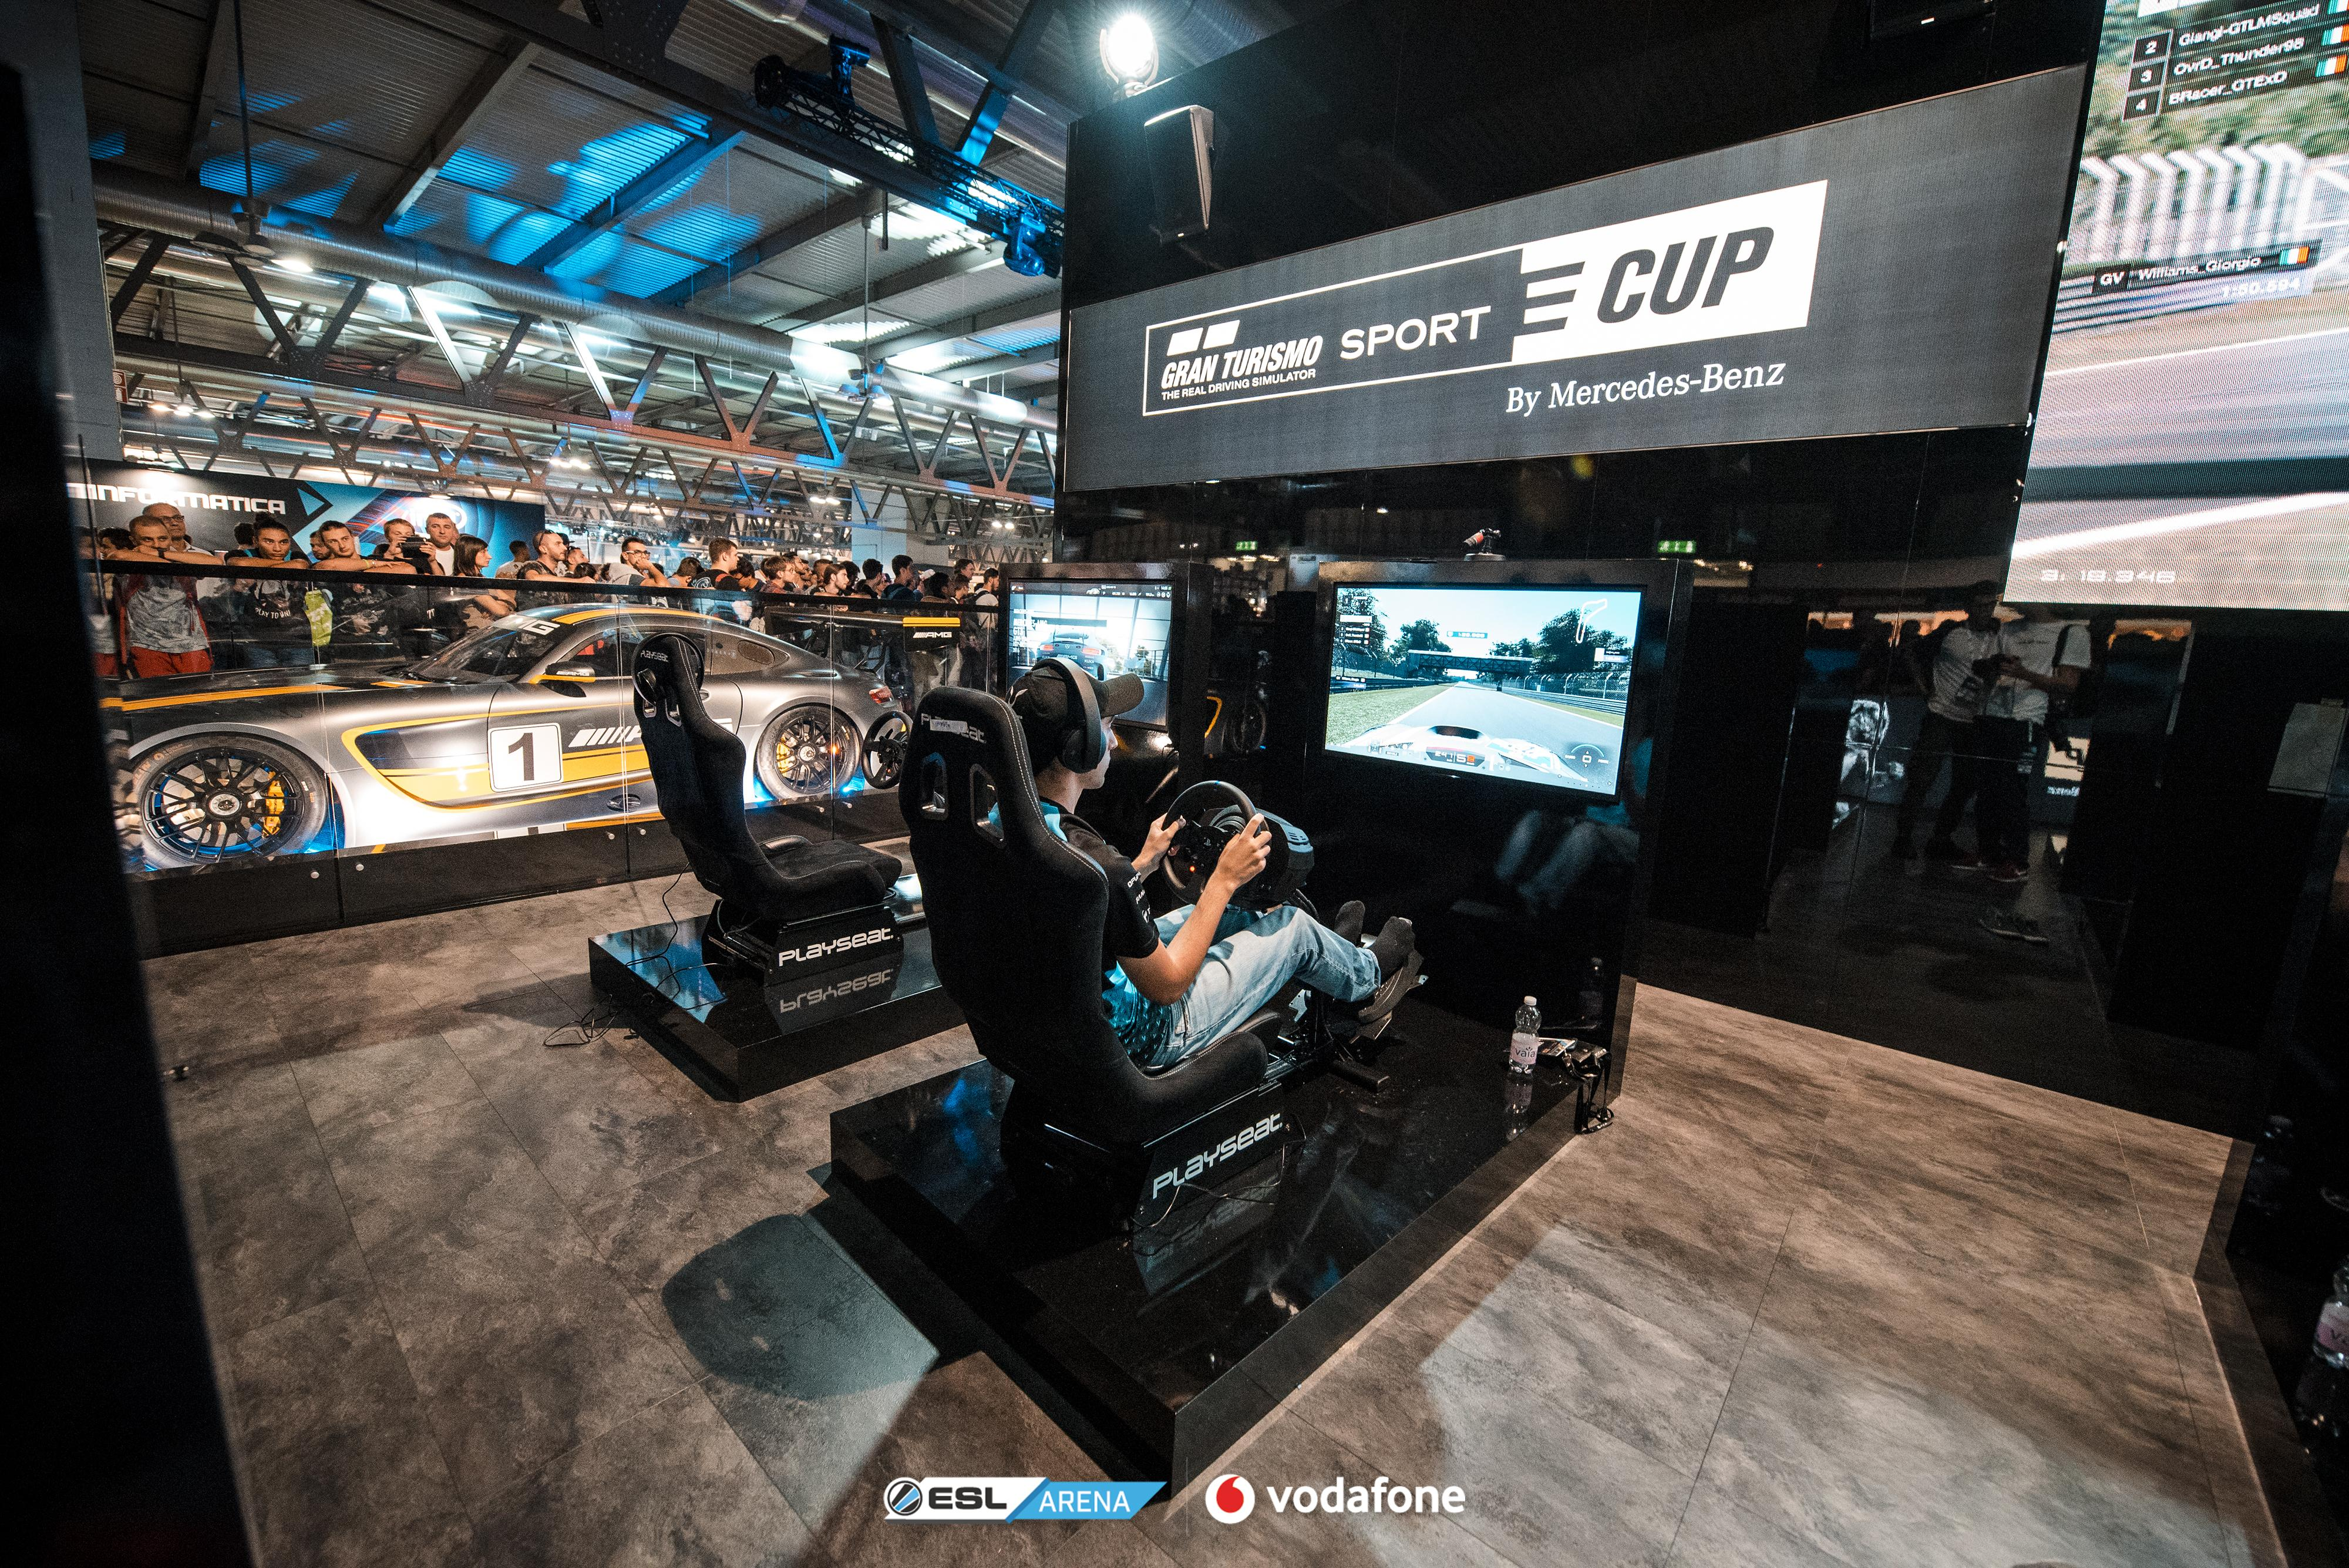 GT Sport e-Cup #1 by Mercedes-Benz - Il podio